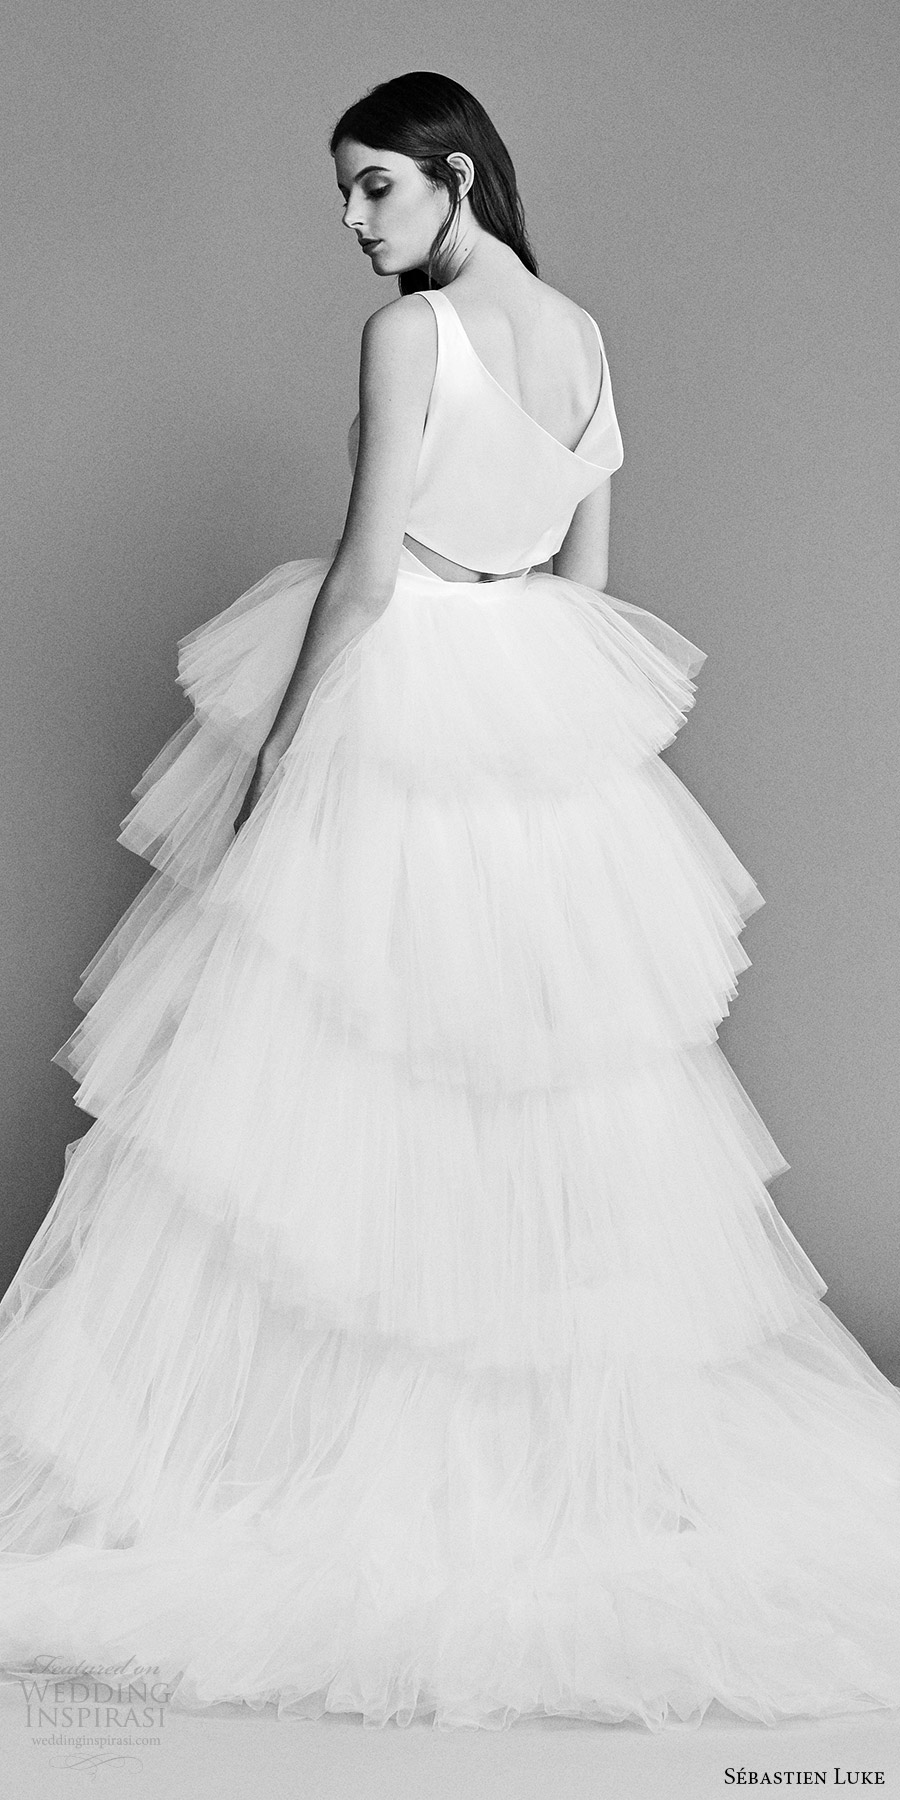 sebastien luke spring 2018 bridal sleeveless v neck ball gown wedding dress tiered tulle skirt bow waist (18b14a) bv romantic chapel train